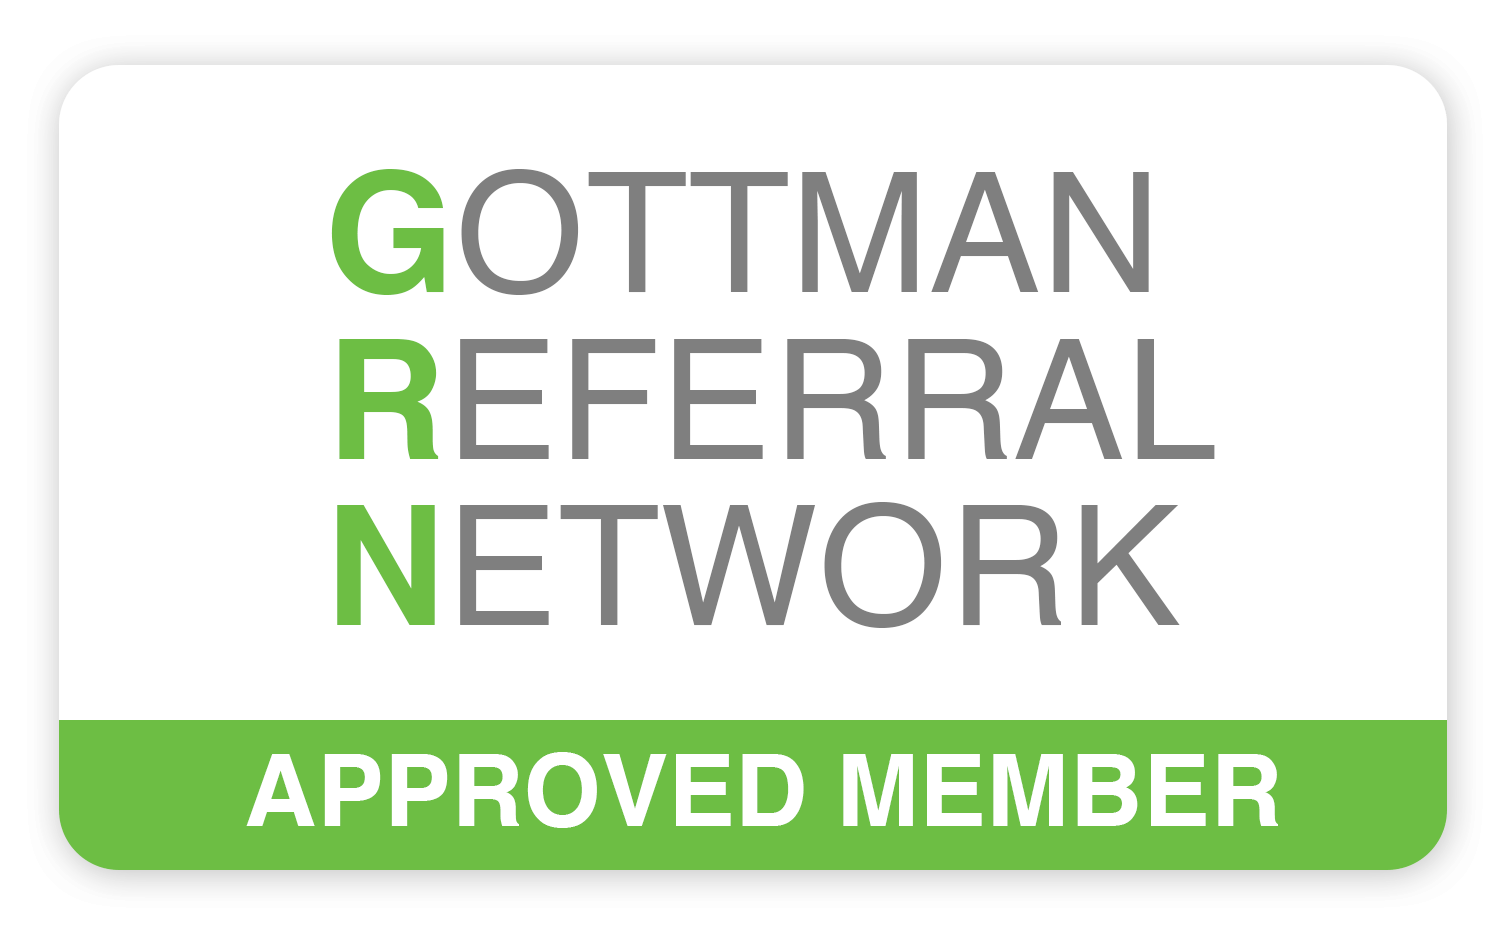 Lisa Stull's profile on the Gottman Referral Network